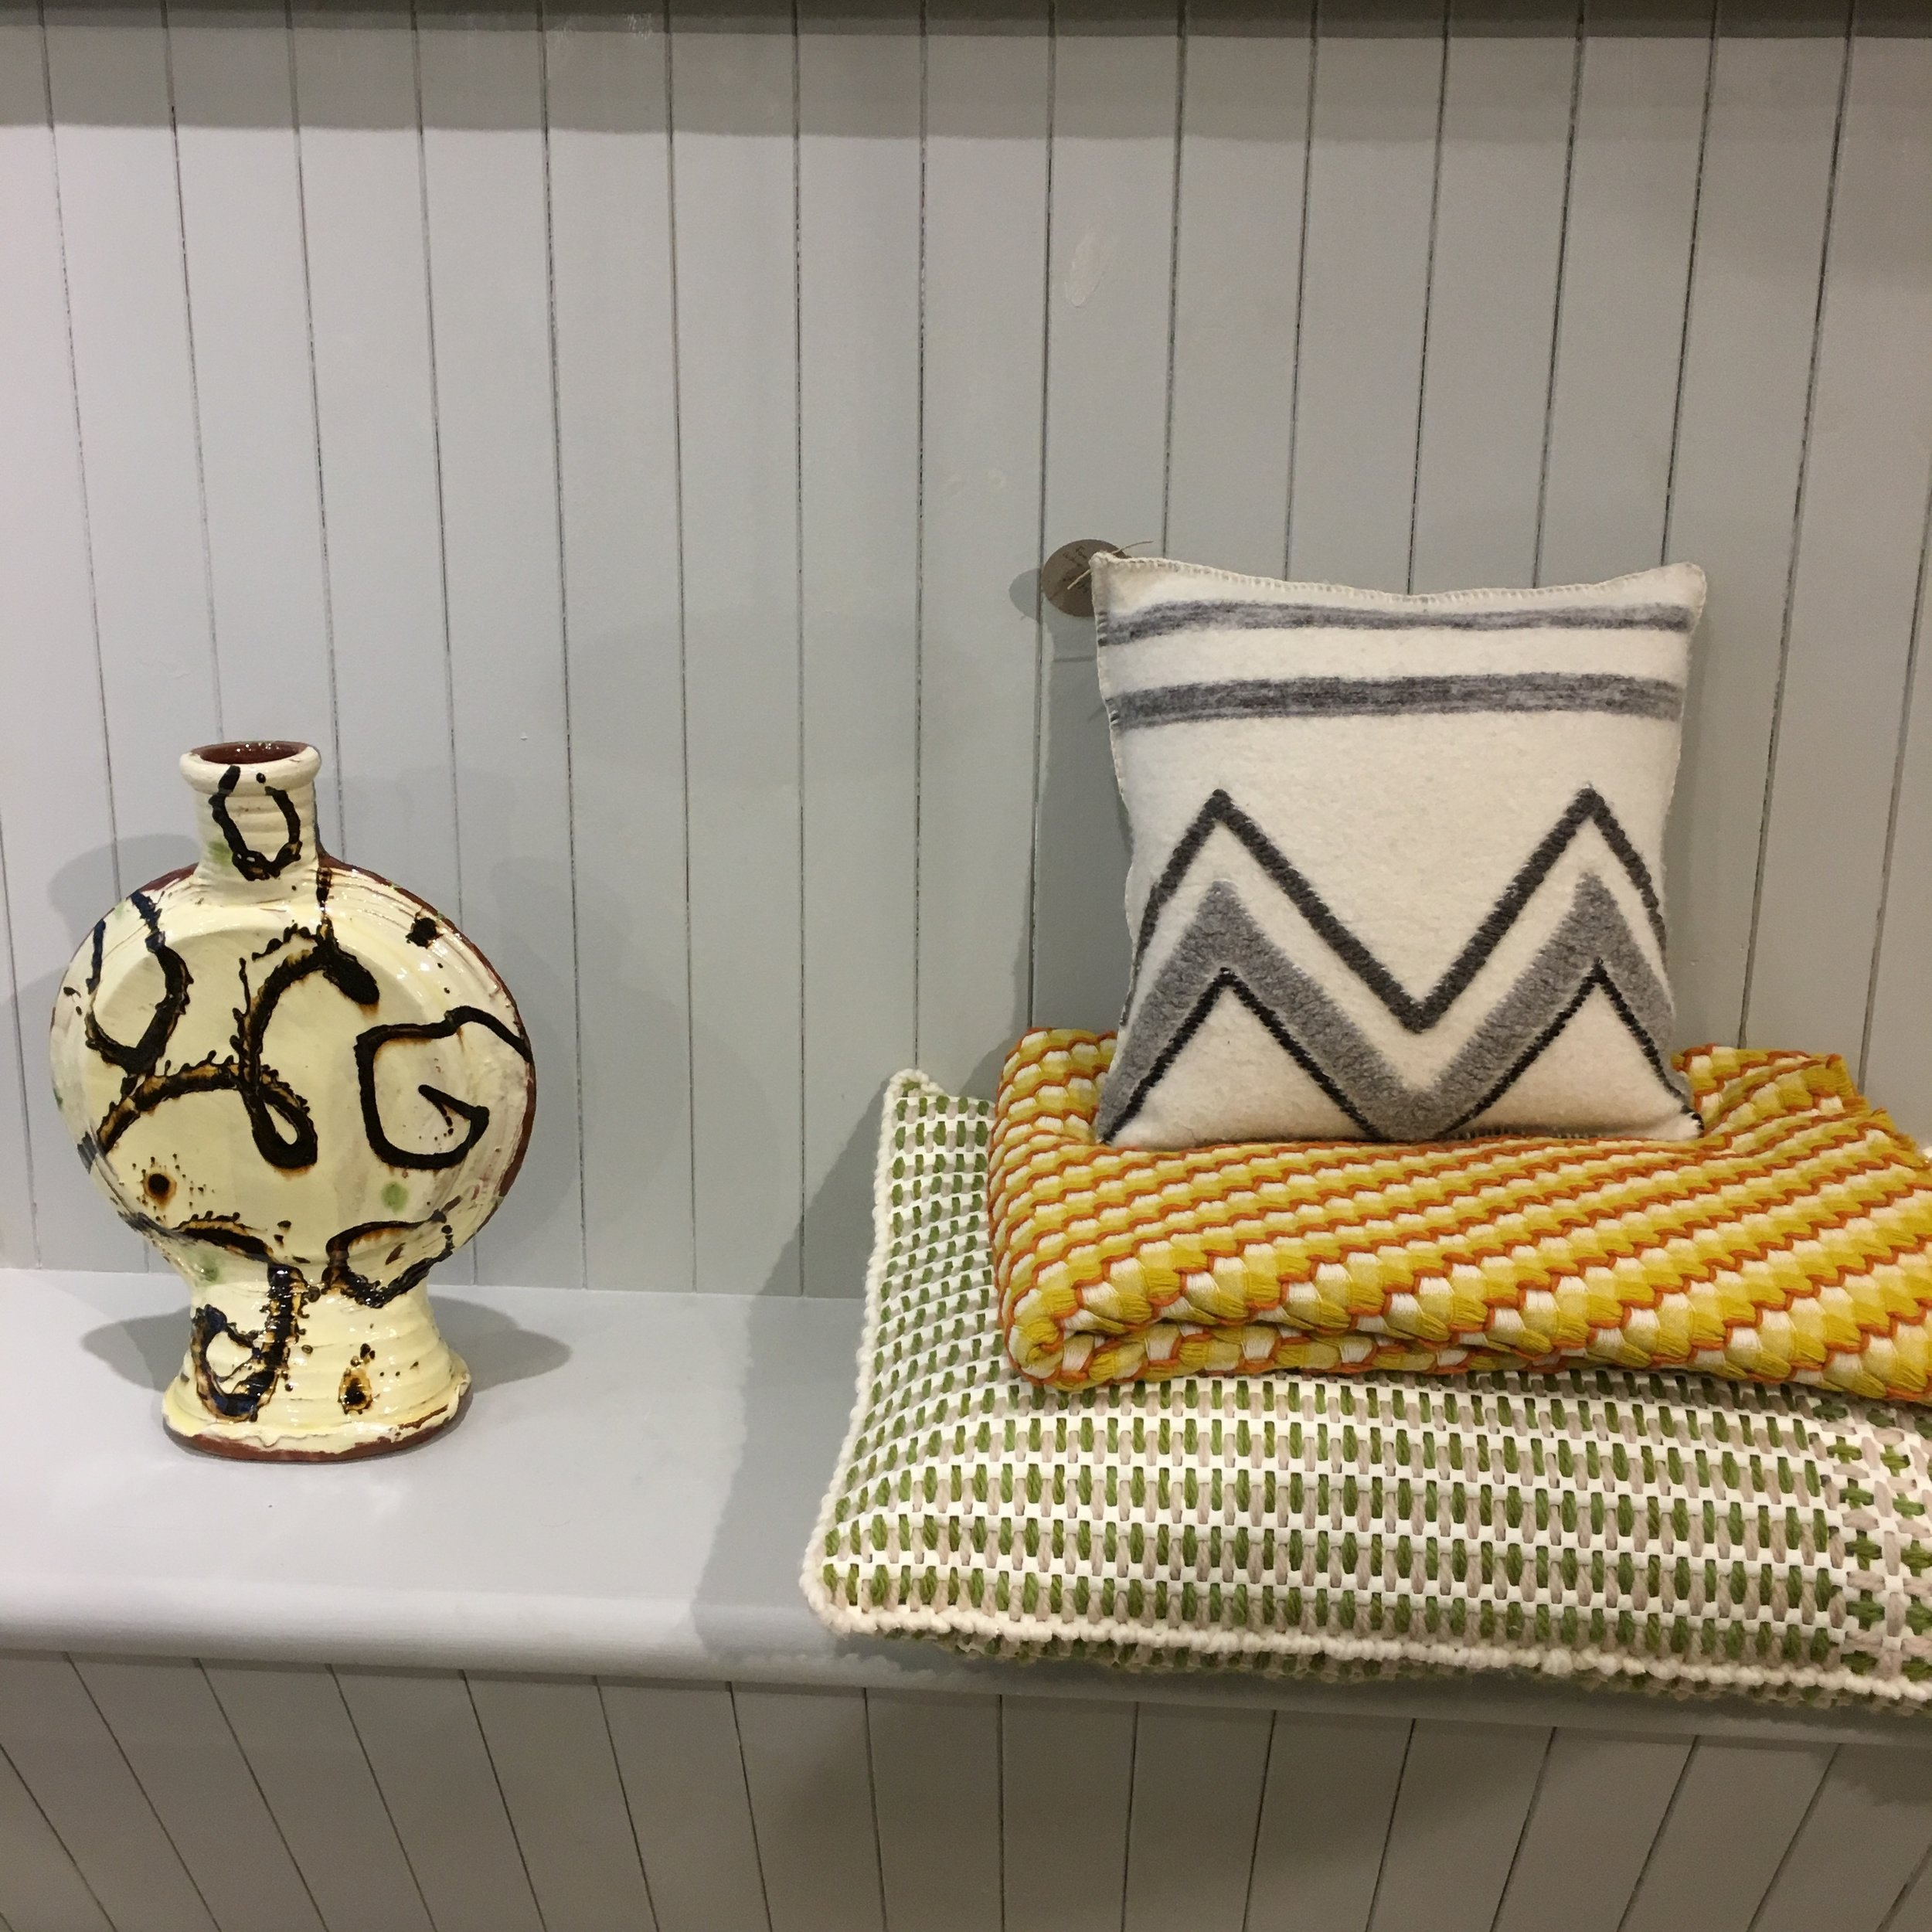 Slipware bottle by Dylan Bowen, cushions by The Good Shepherd and Kim Norrie